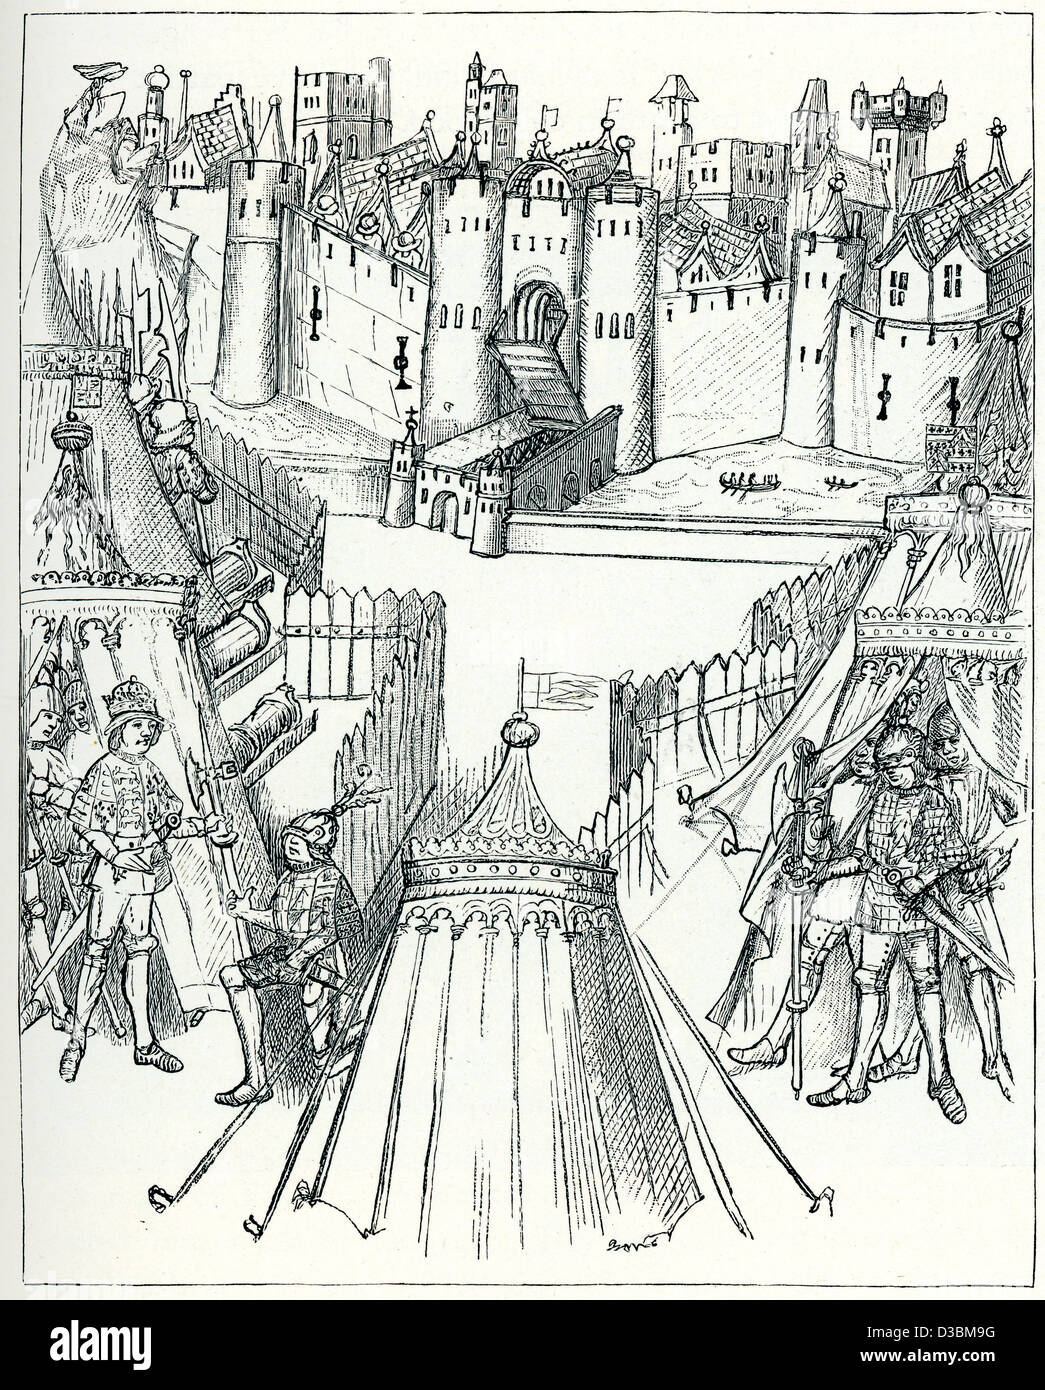 Vintage engraving from a 15th Century original of the Siege of Rouen in1418 during the Hundred Years' War. - Stock Image